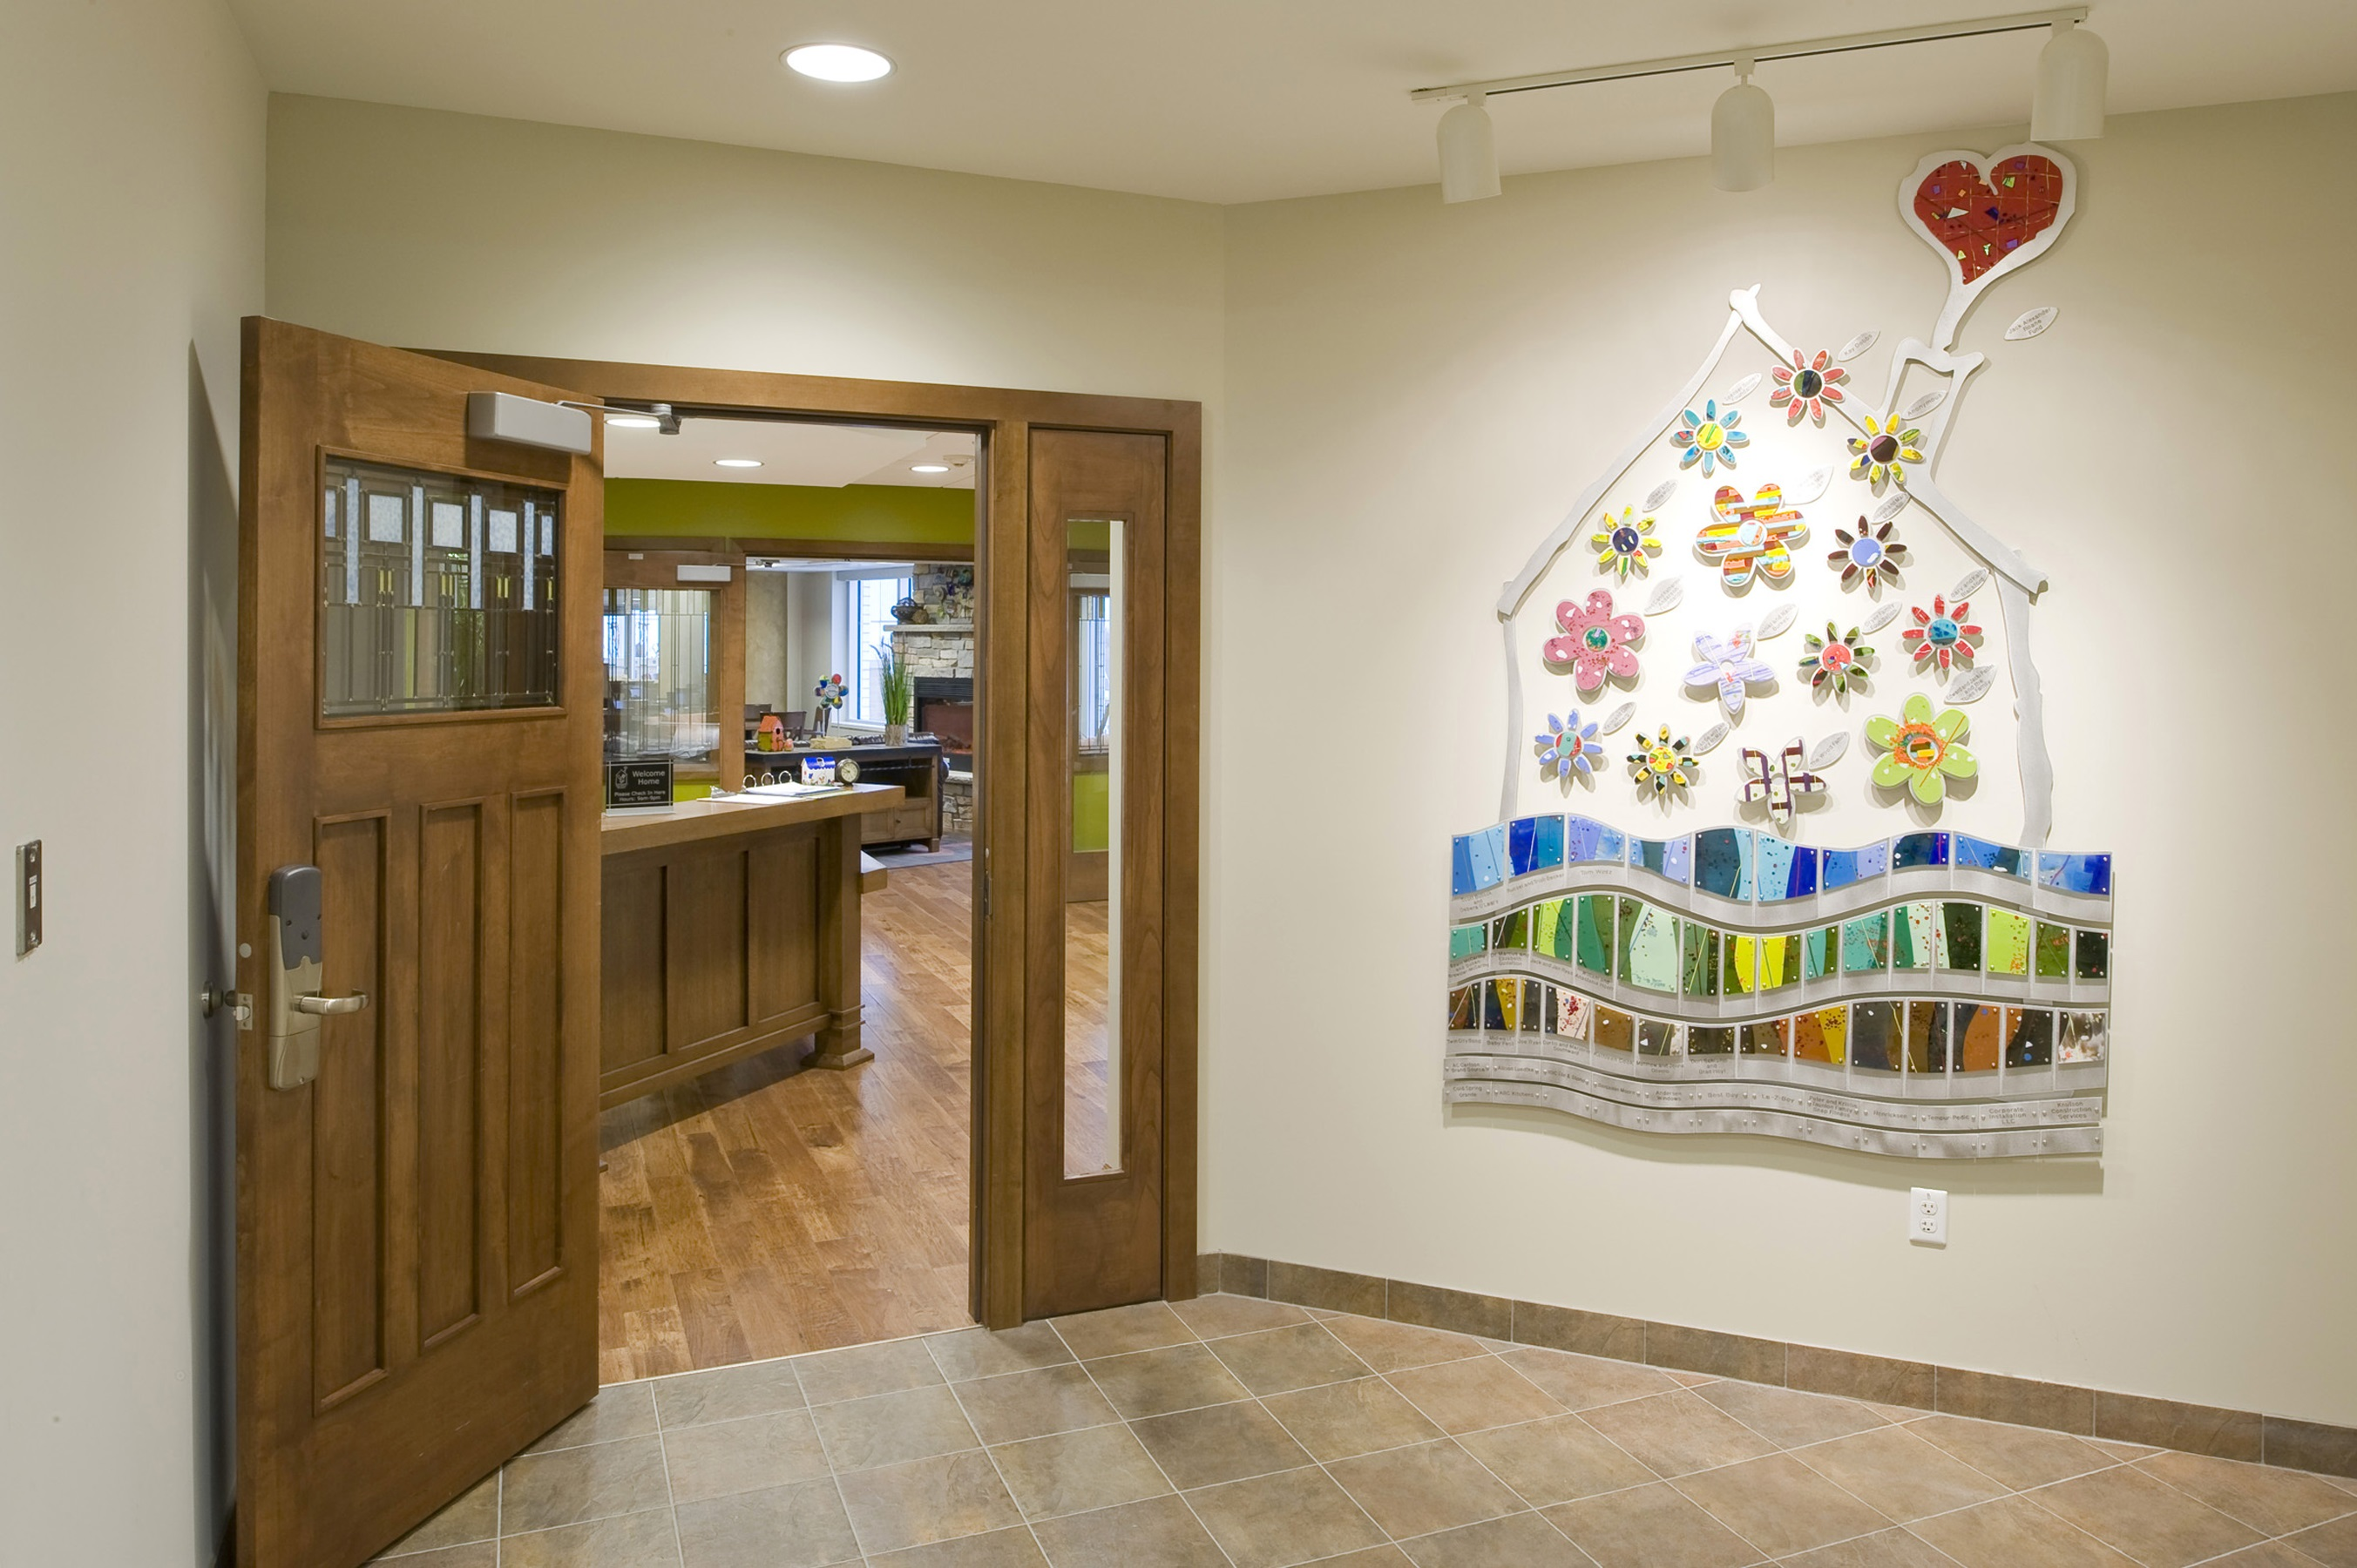 Ronald McDonald House Donor Wall